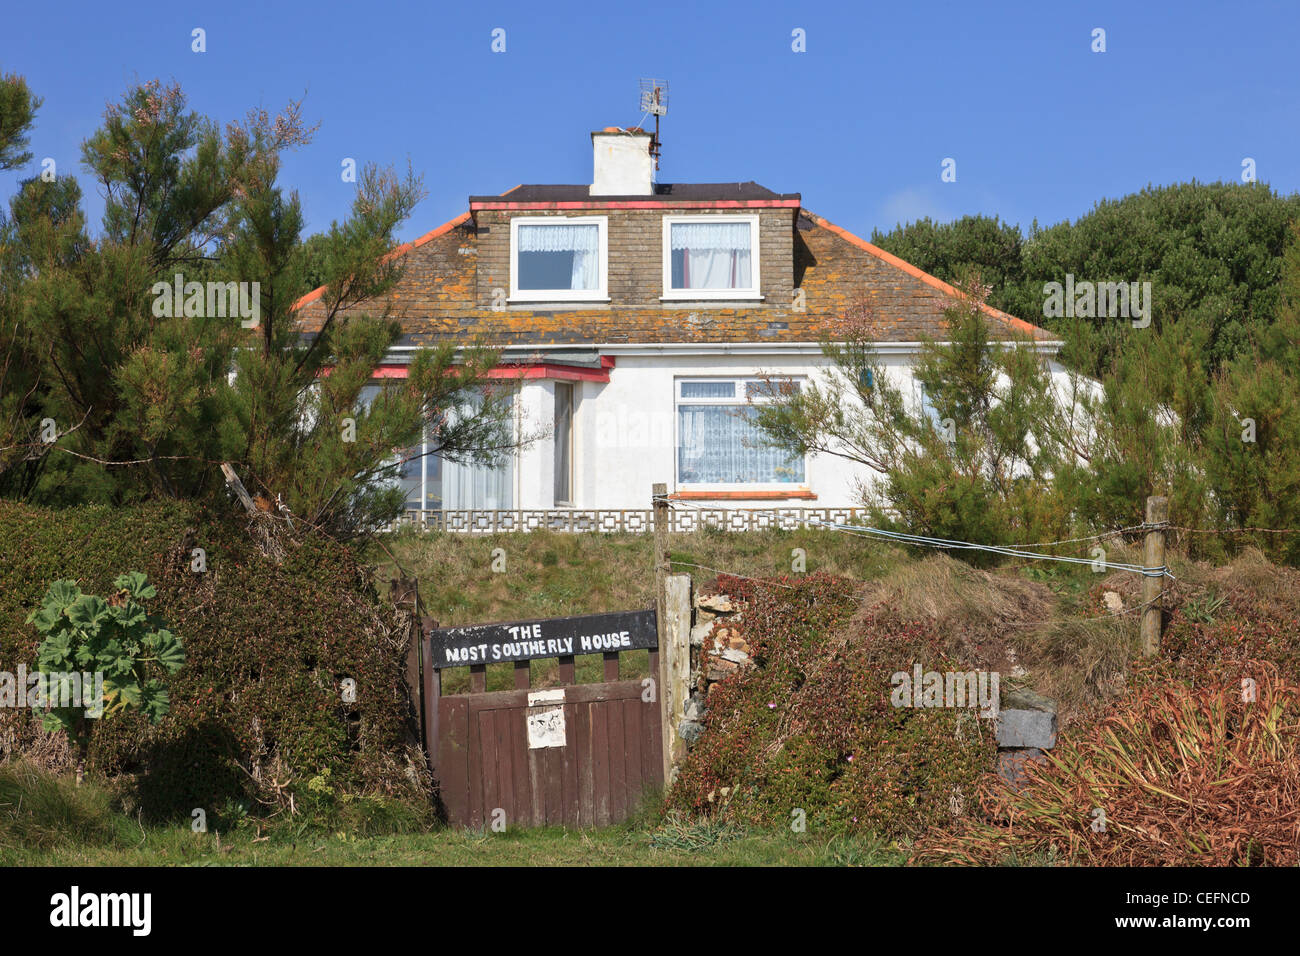 Lizard Point, Cornwall, England, UK. The most southerly house on the peninsula with a sign on the gate Stock Photo